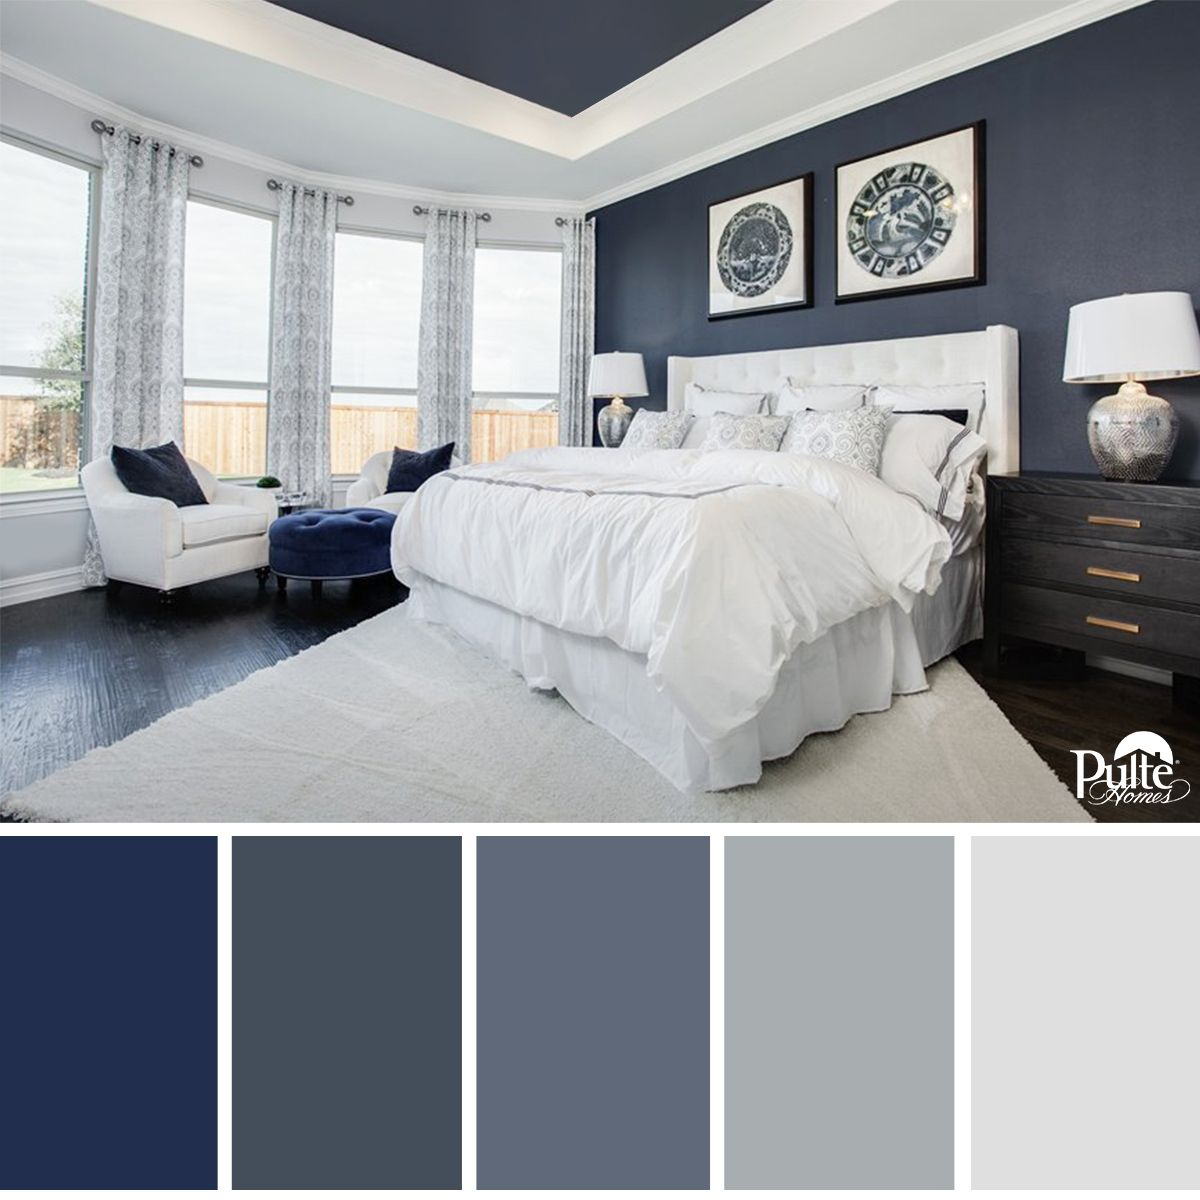 This Bedroom Design Has The Right Idea. The Rich Blue Color Palette And  Decor Create